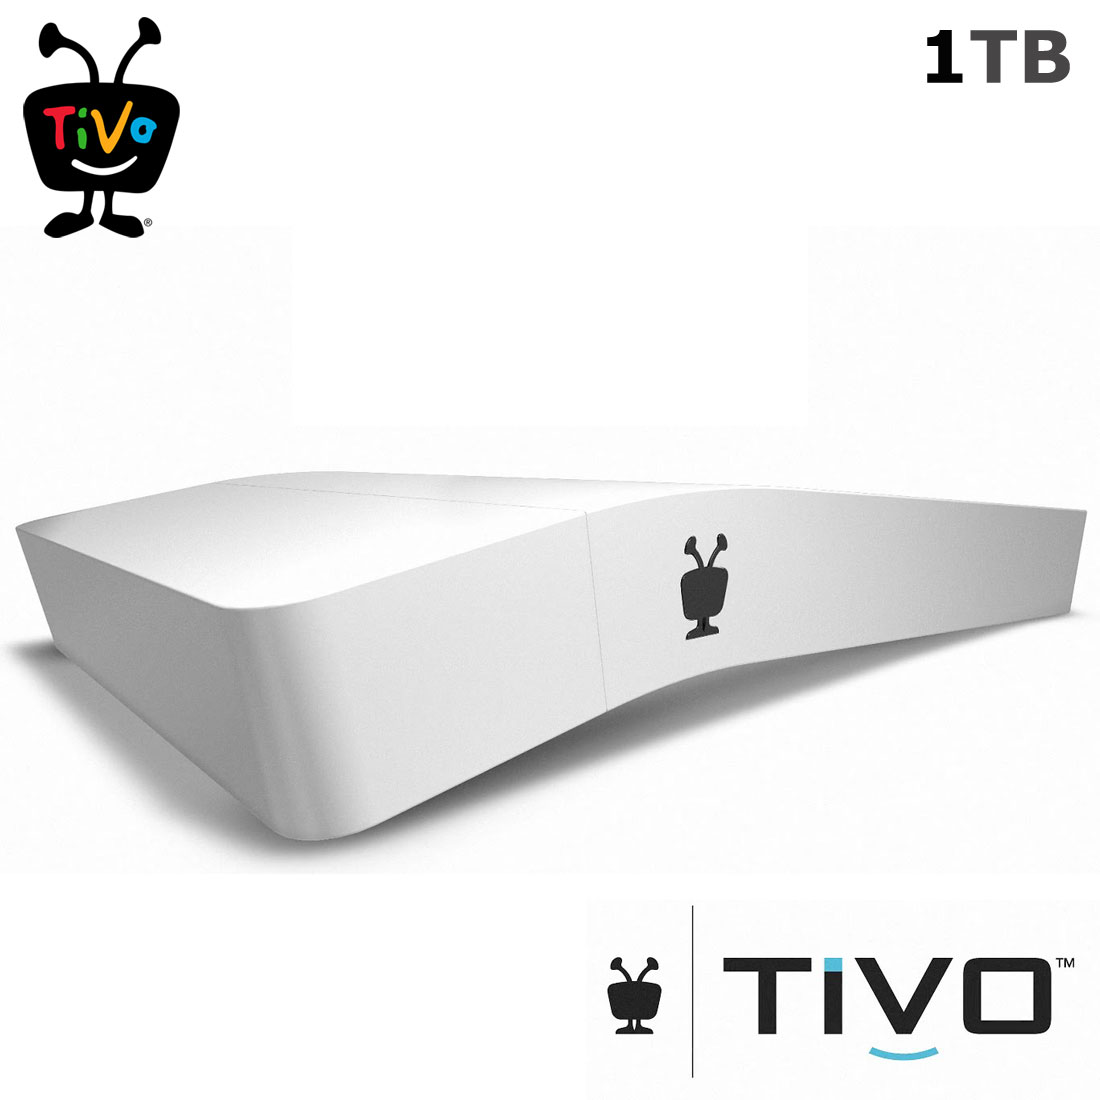 Tivo BOLT 1000 GB DVR (Old Version) - Digital Video Recorder and Streaming Media Player - 4K UHD Compatible - Works with Cable or HD Antenna